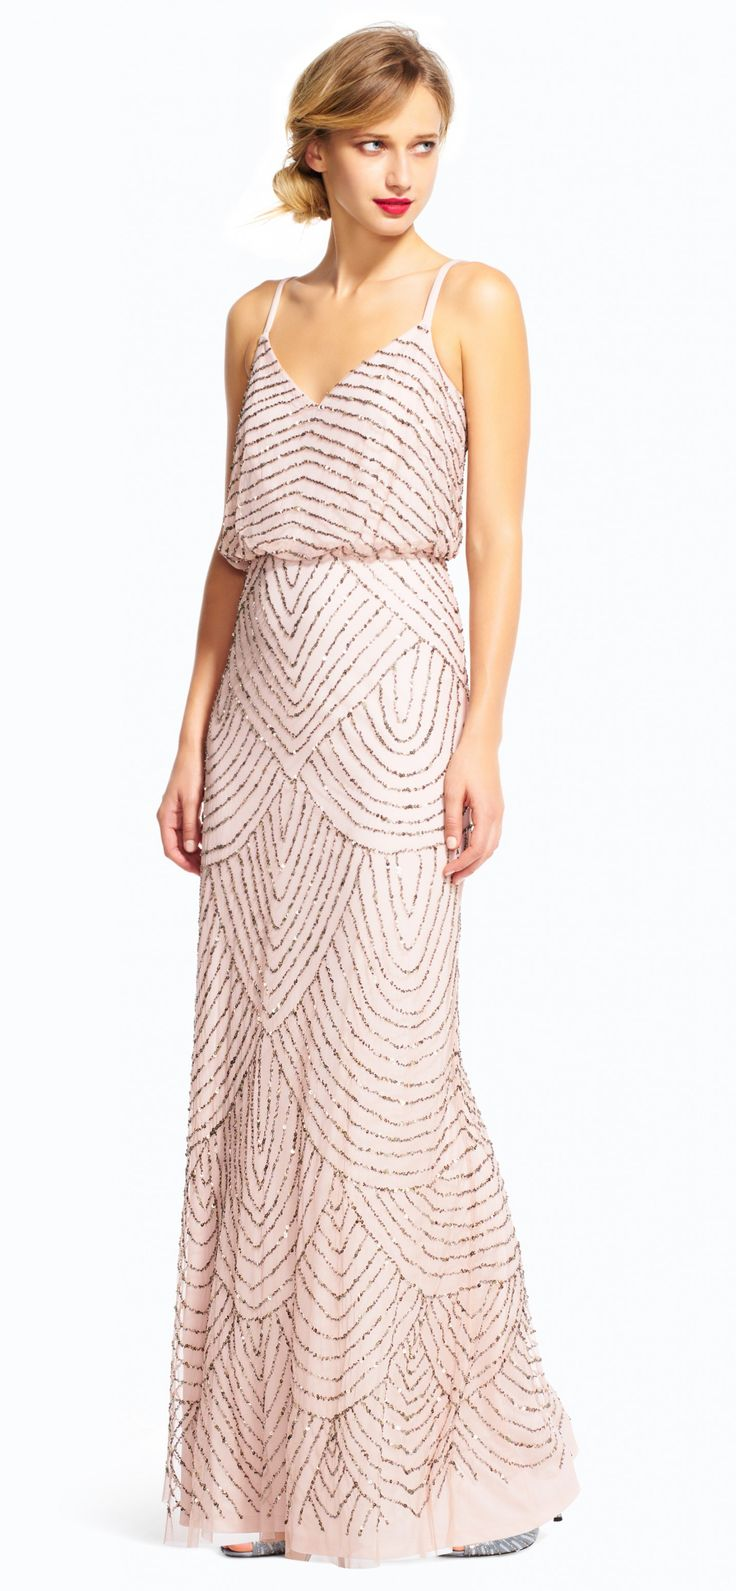 Petite Wedding Guest Dresses | Adrianna Papell in Petite Cocktail Dresses For Wedding